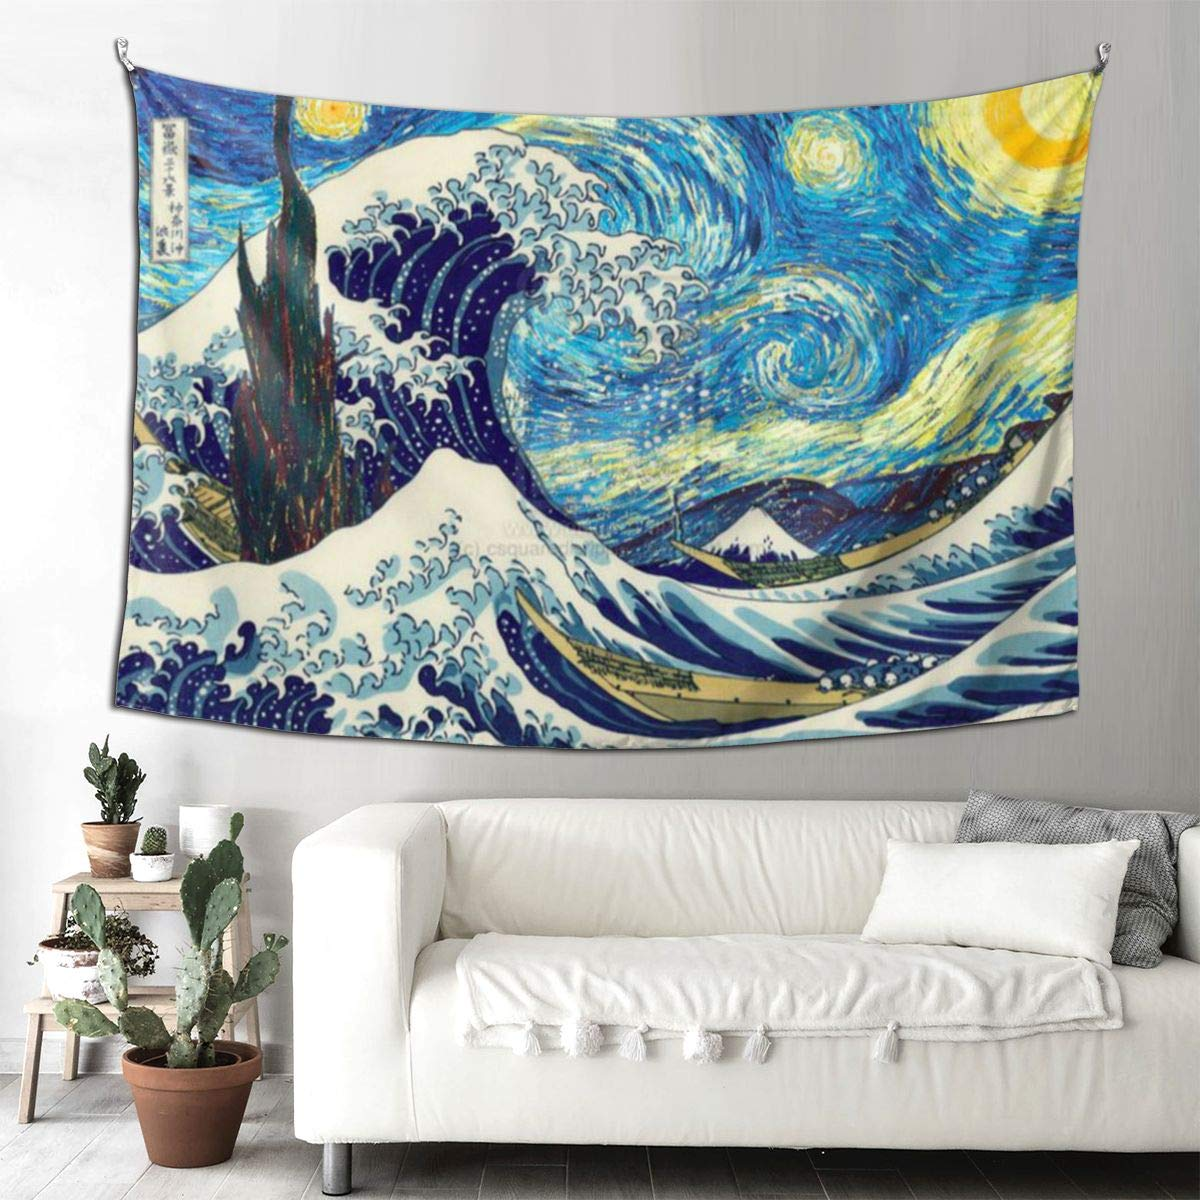 "SSUI Japan Waves Tapestry Wall Hanging for Room Art Tapestry Home Decor Wall Decor (90"" X 60""Inch)"